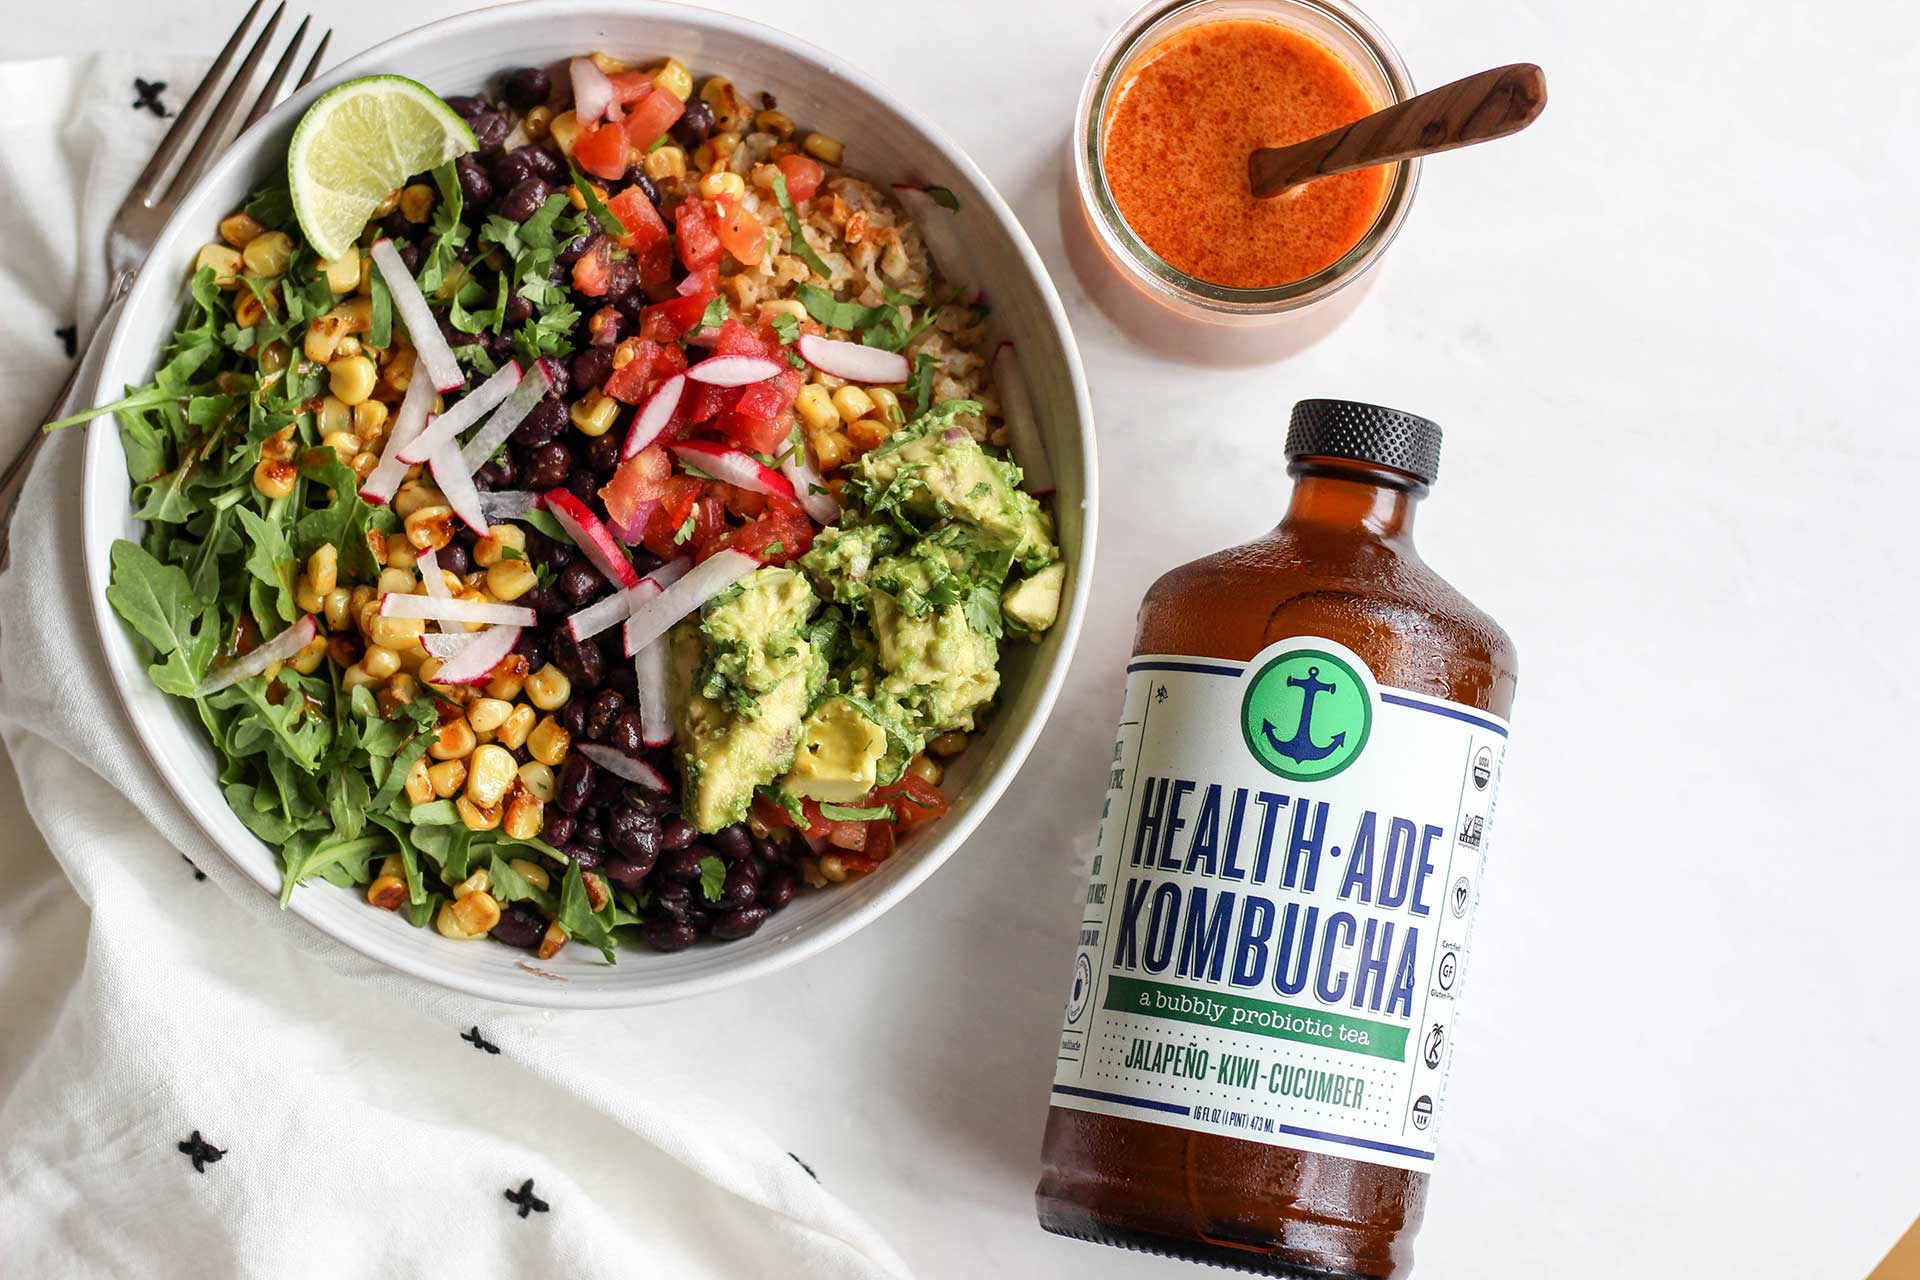 Our New Favorite Burrito Bowl with Chipotle Jalapeño Kombucha Dressing